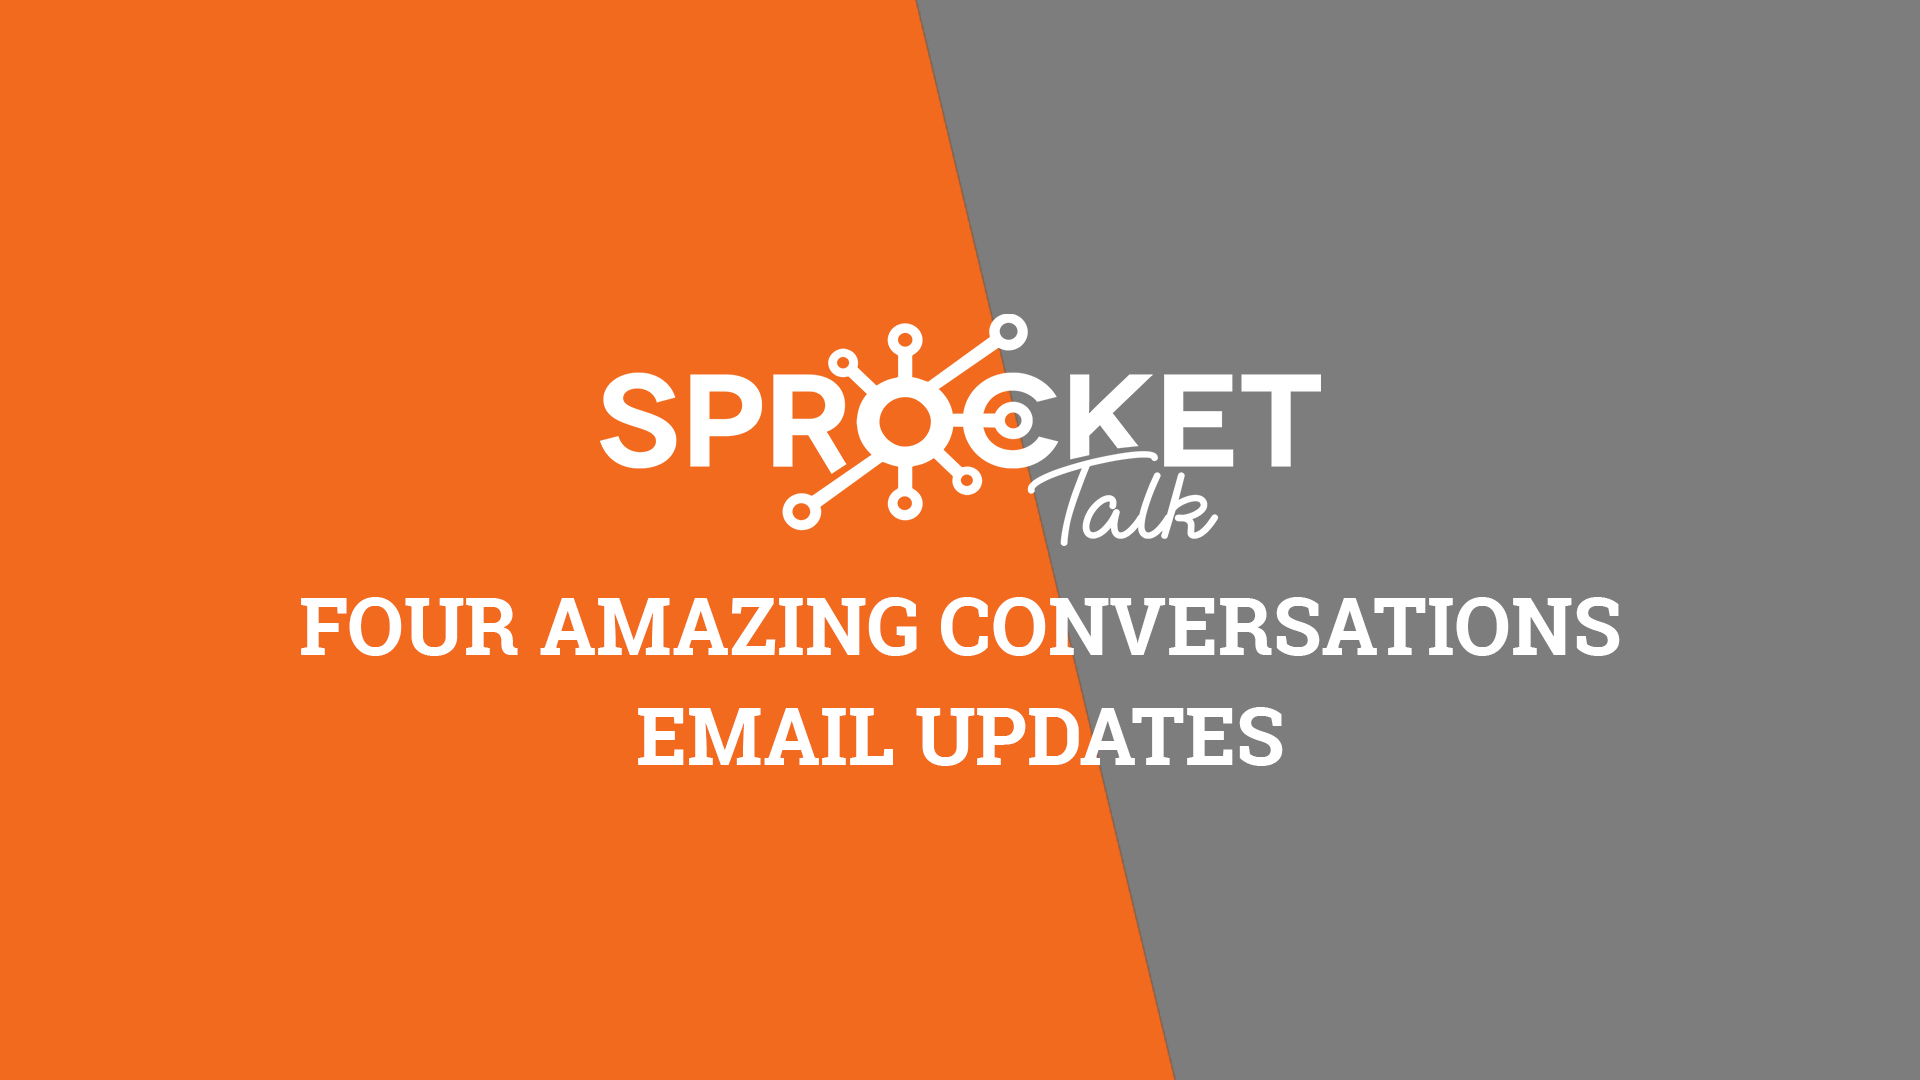 Four Amazing Conversations Email Updates